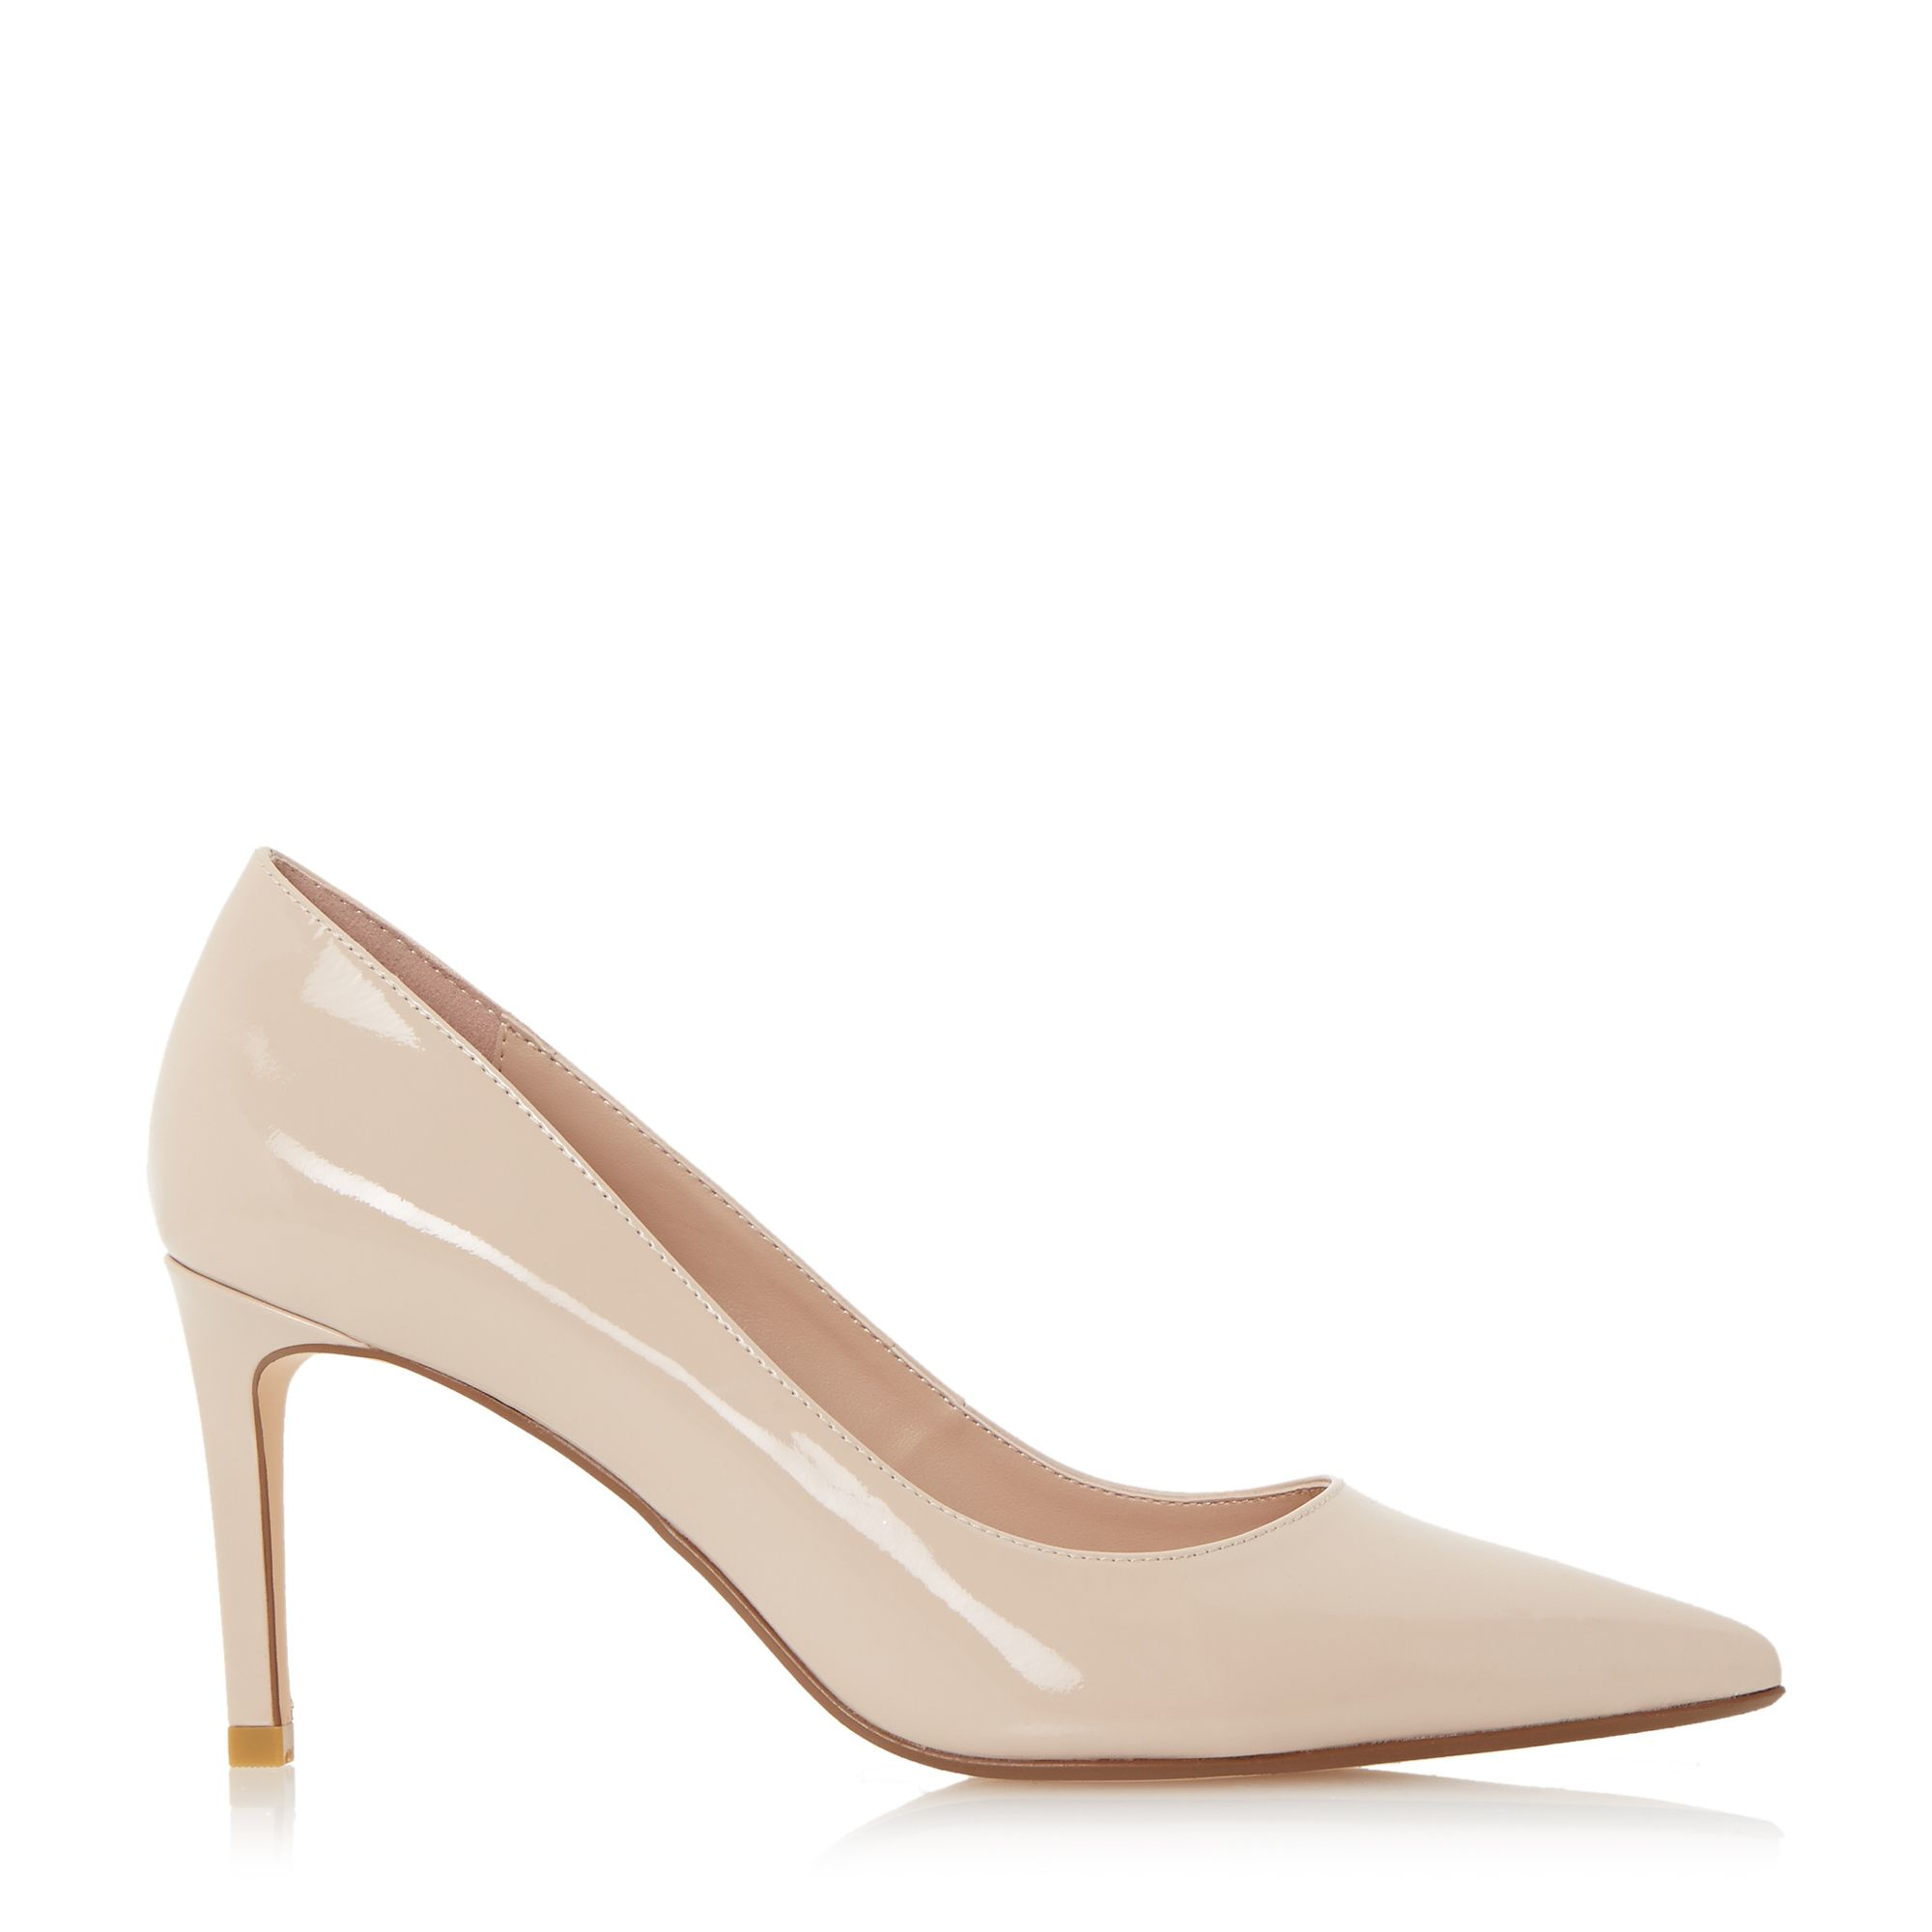 Nude Shoes Mid Heel - Is Heel